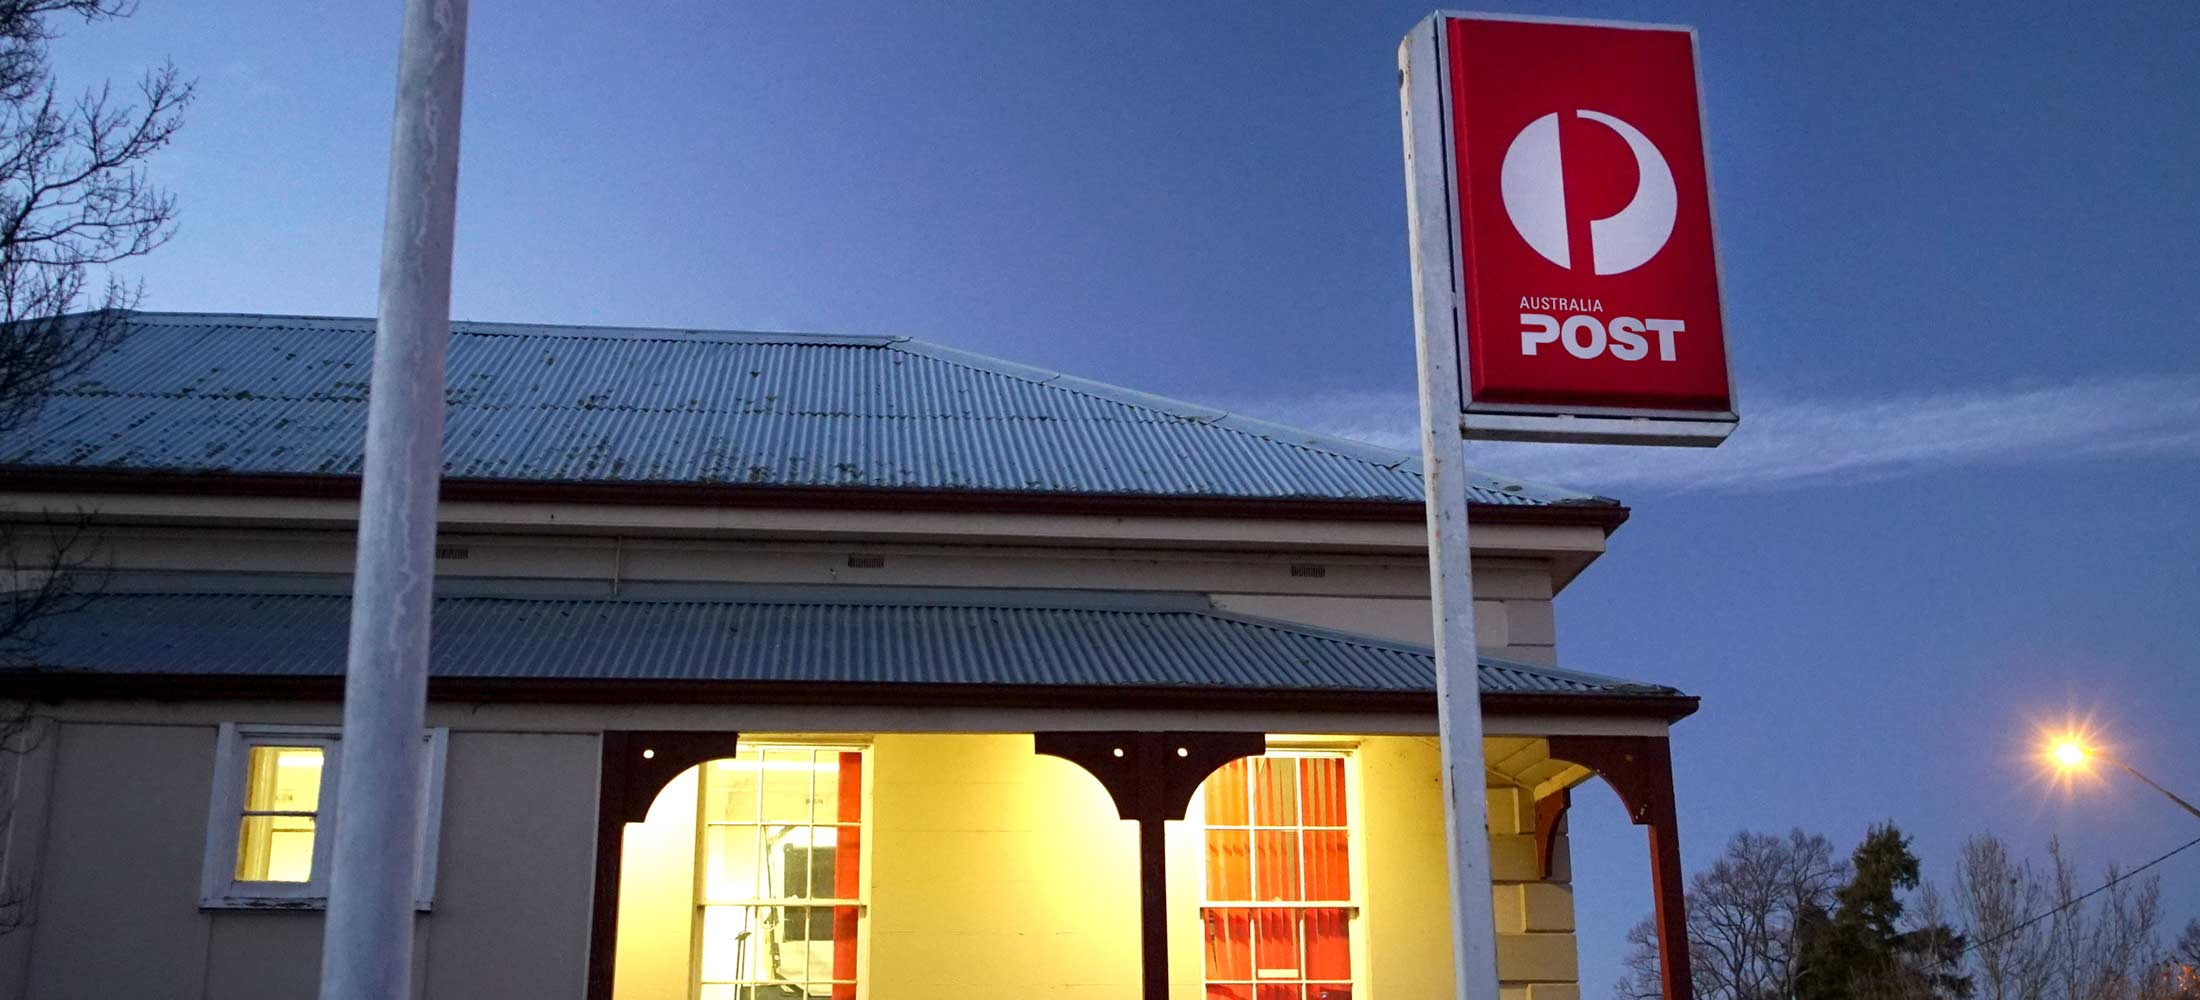 Everyone matters - Australia Post